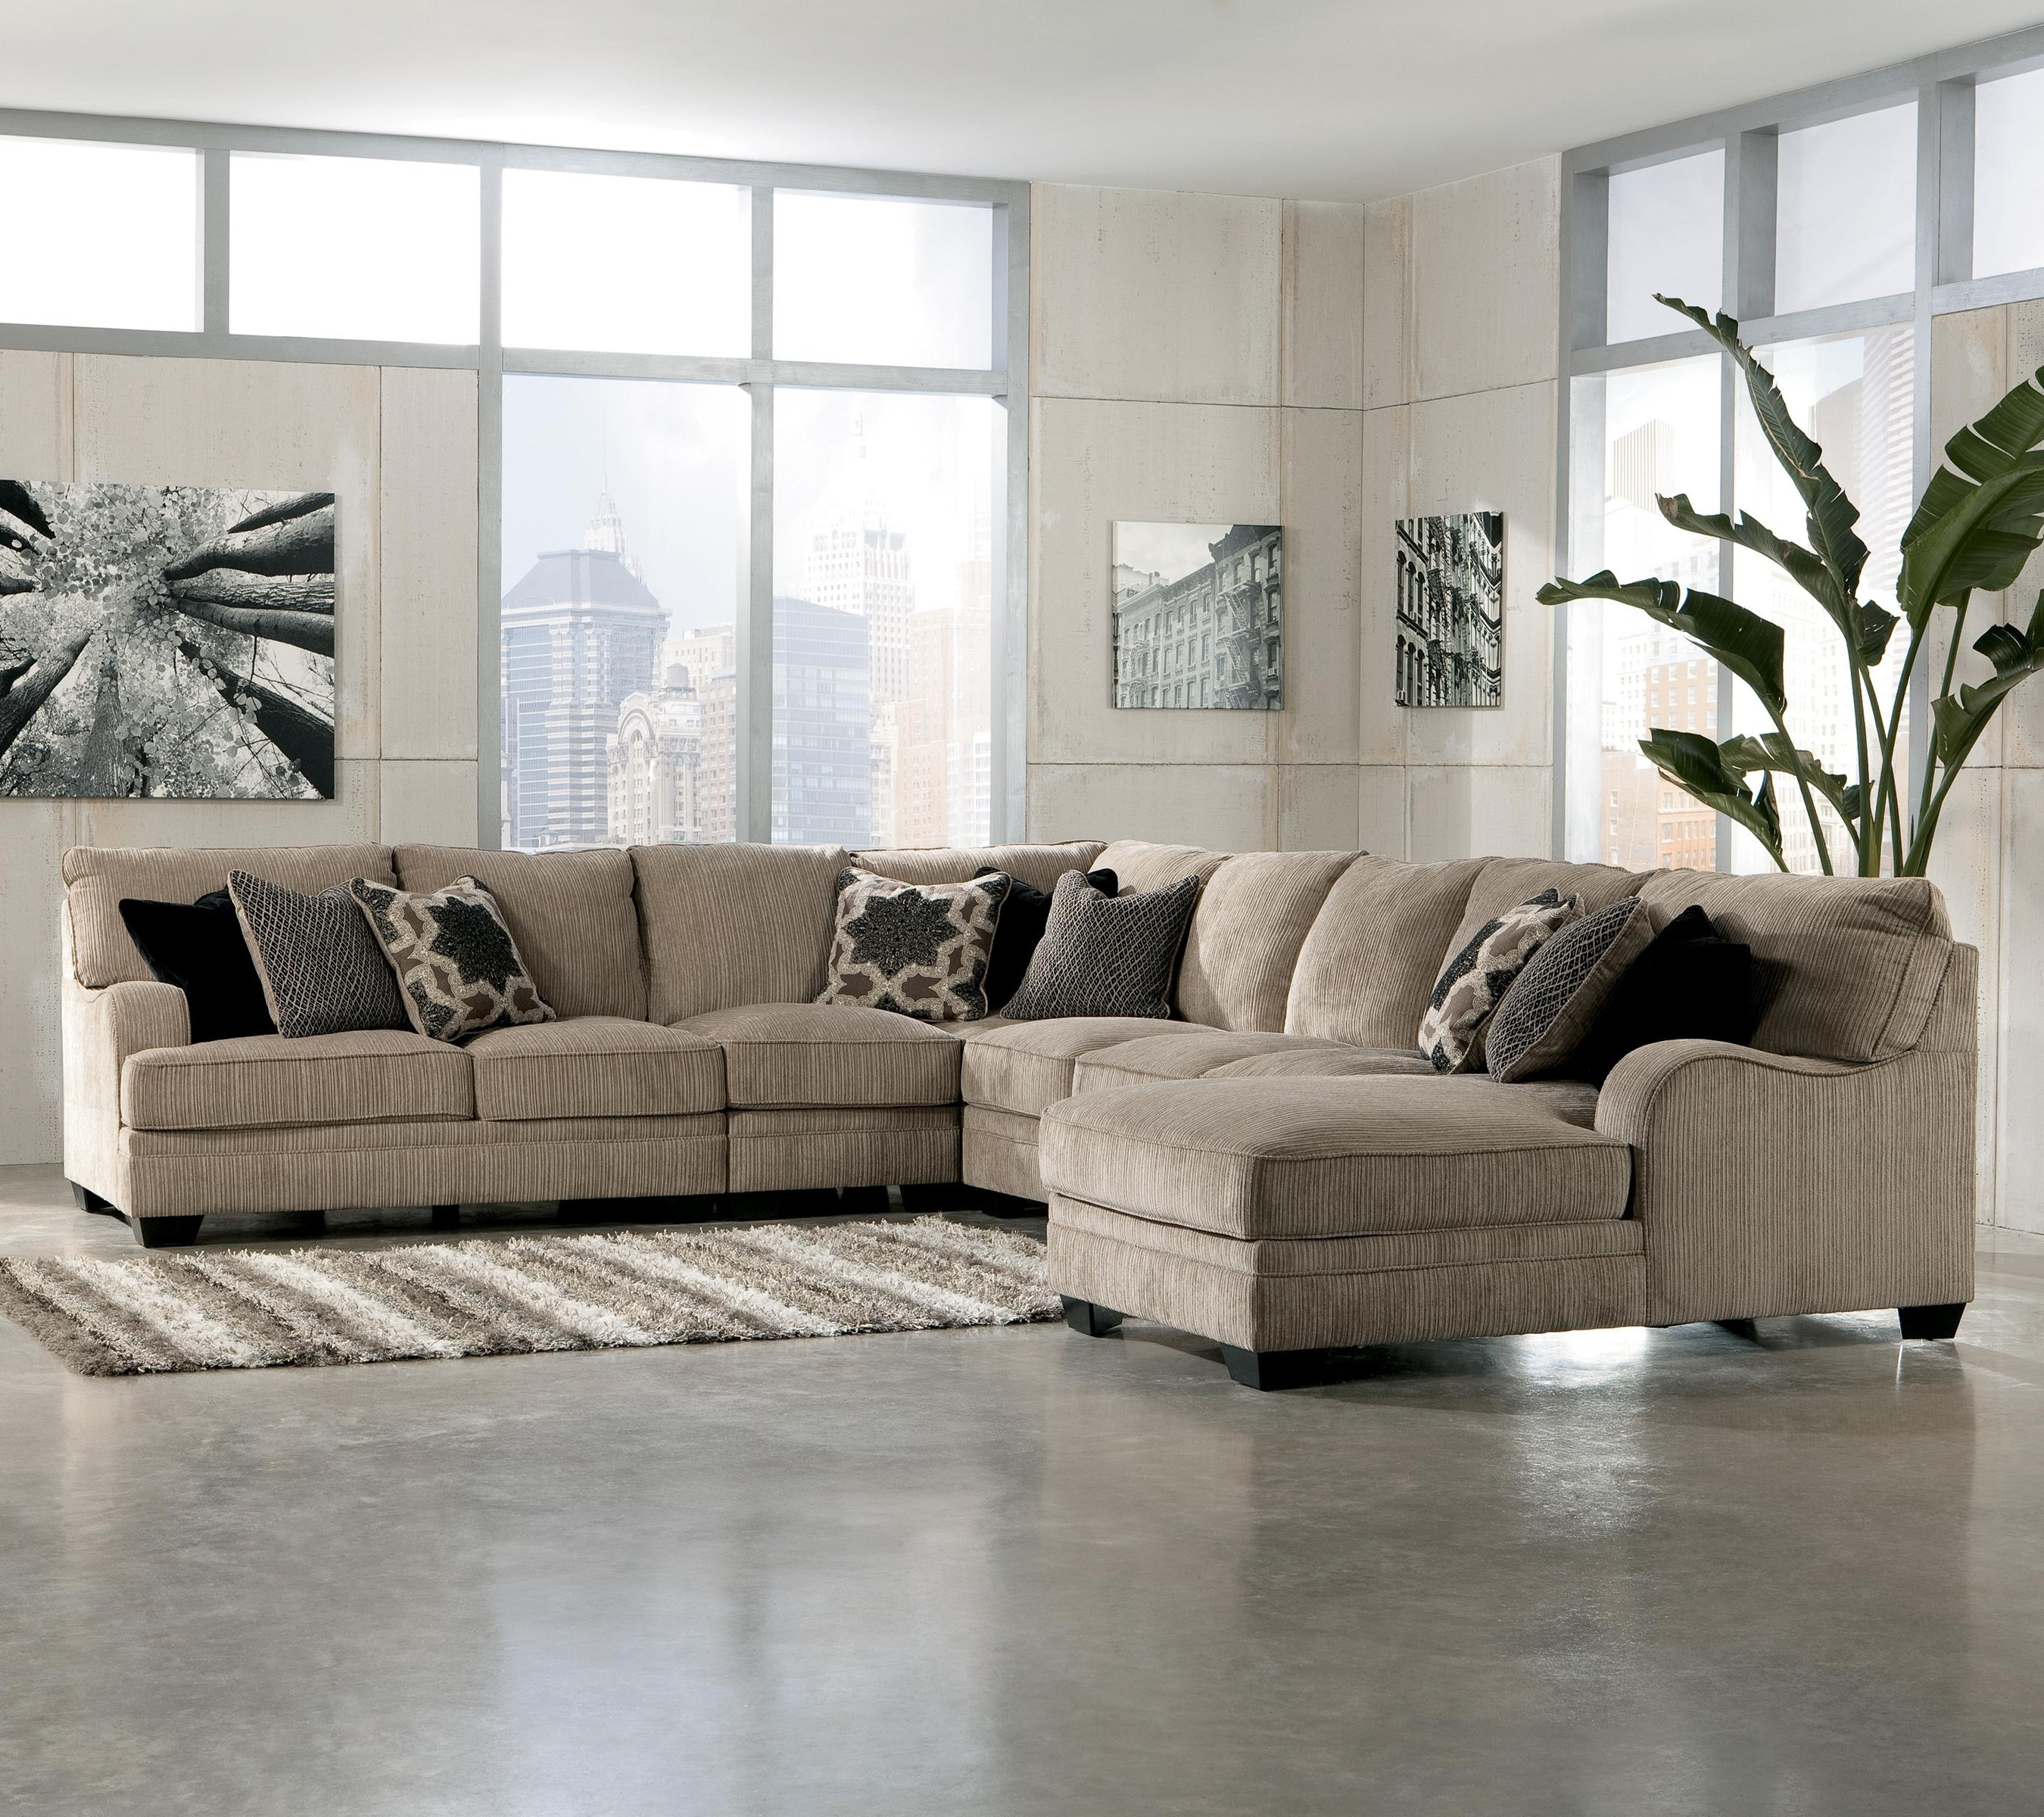 Sectional Sofas At Buffalo Ny With Most Recently Released Furniture: Ashley Furniture Charlotte Nc (View 12 of 15)